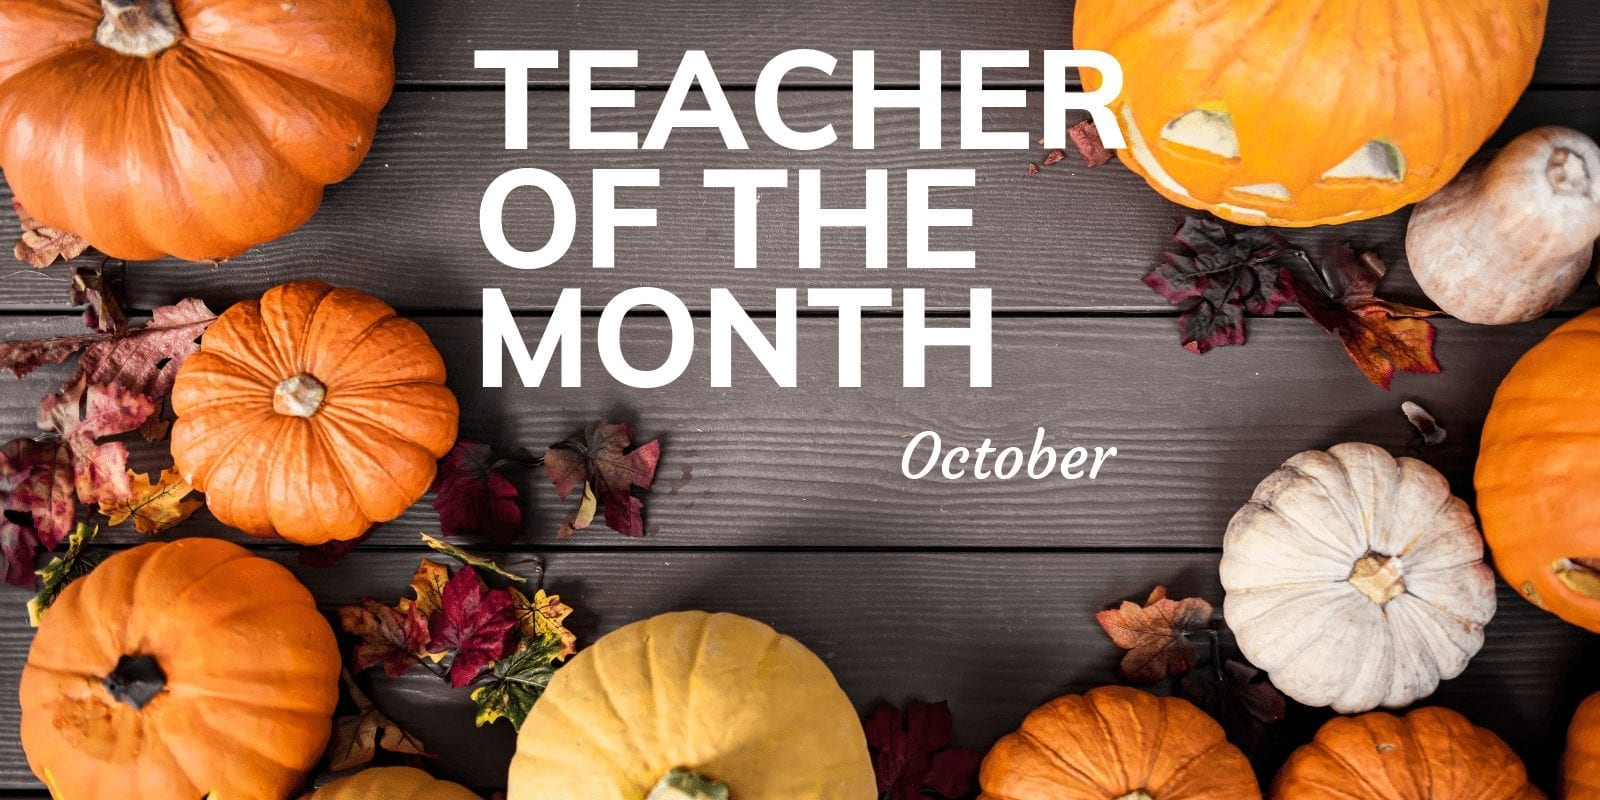 Little Sunshine's Playhouse Teacher of the Month October